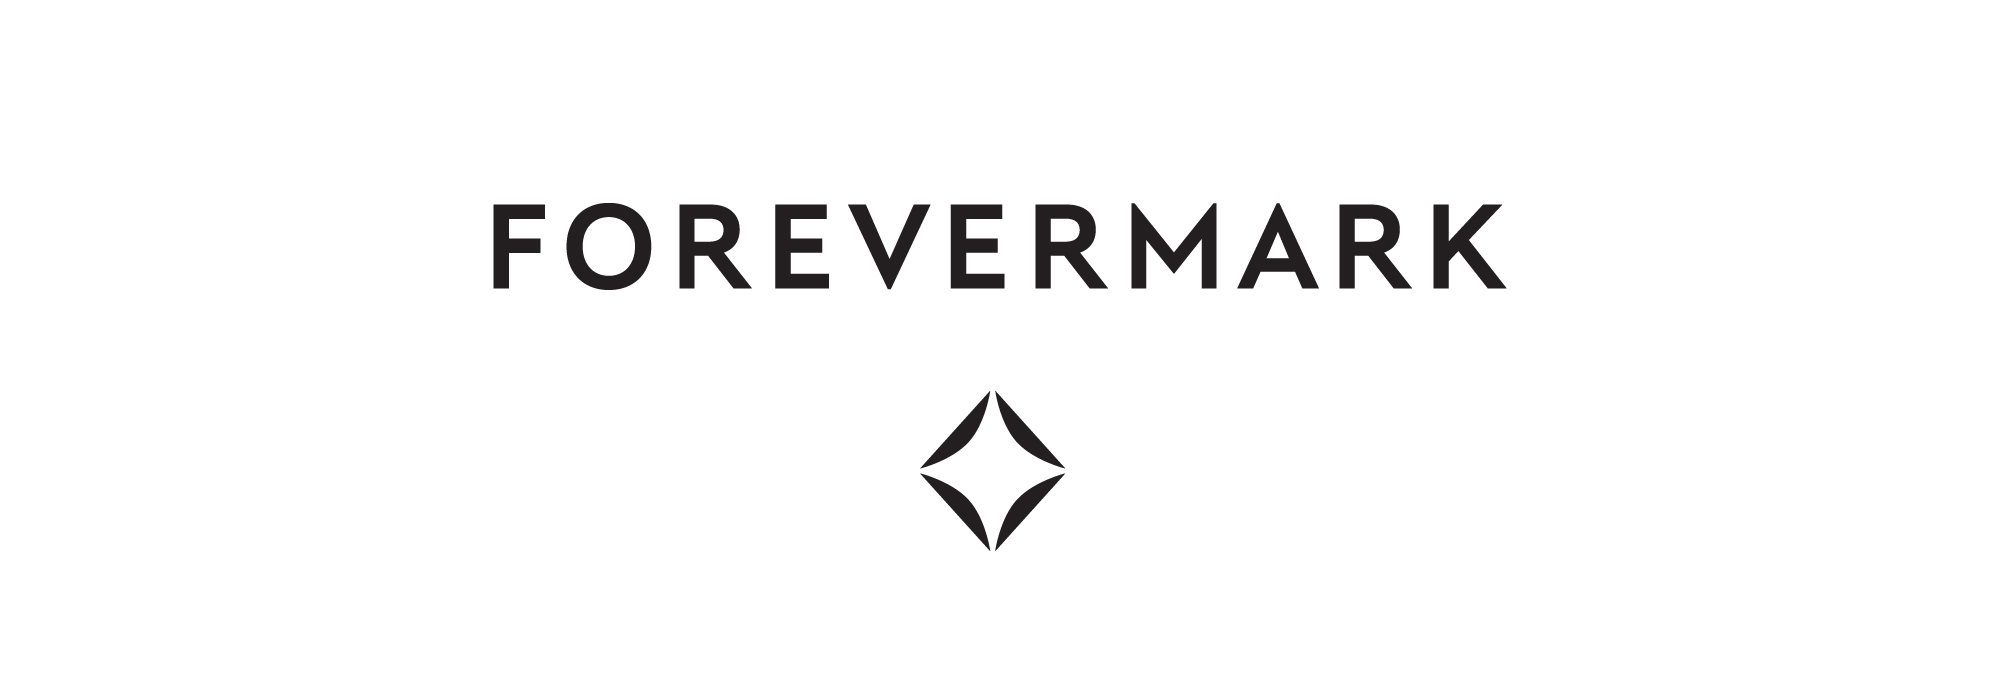 Jewellery new brand development - De Beers Forevermark Diamonds luxury jewellery brand